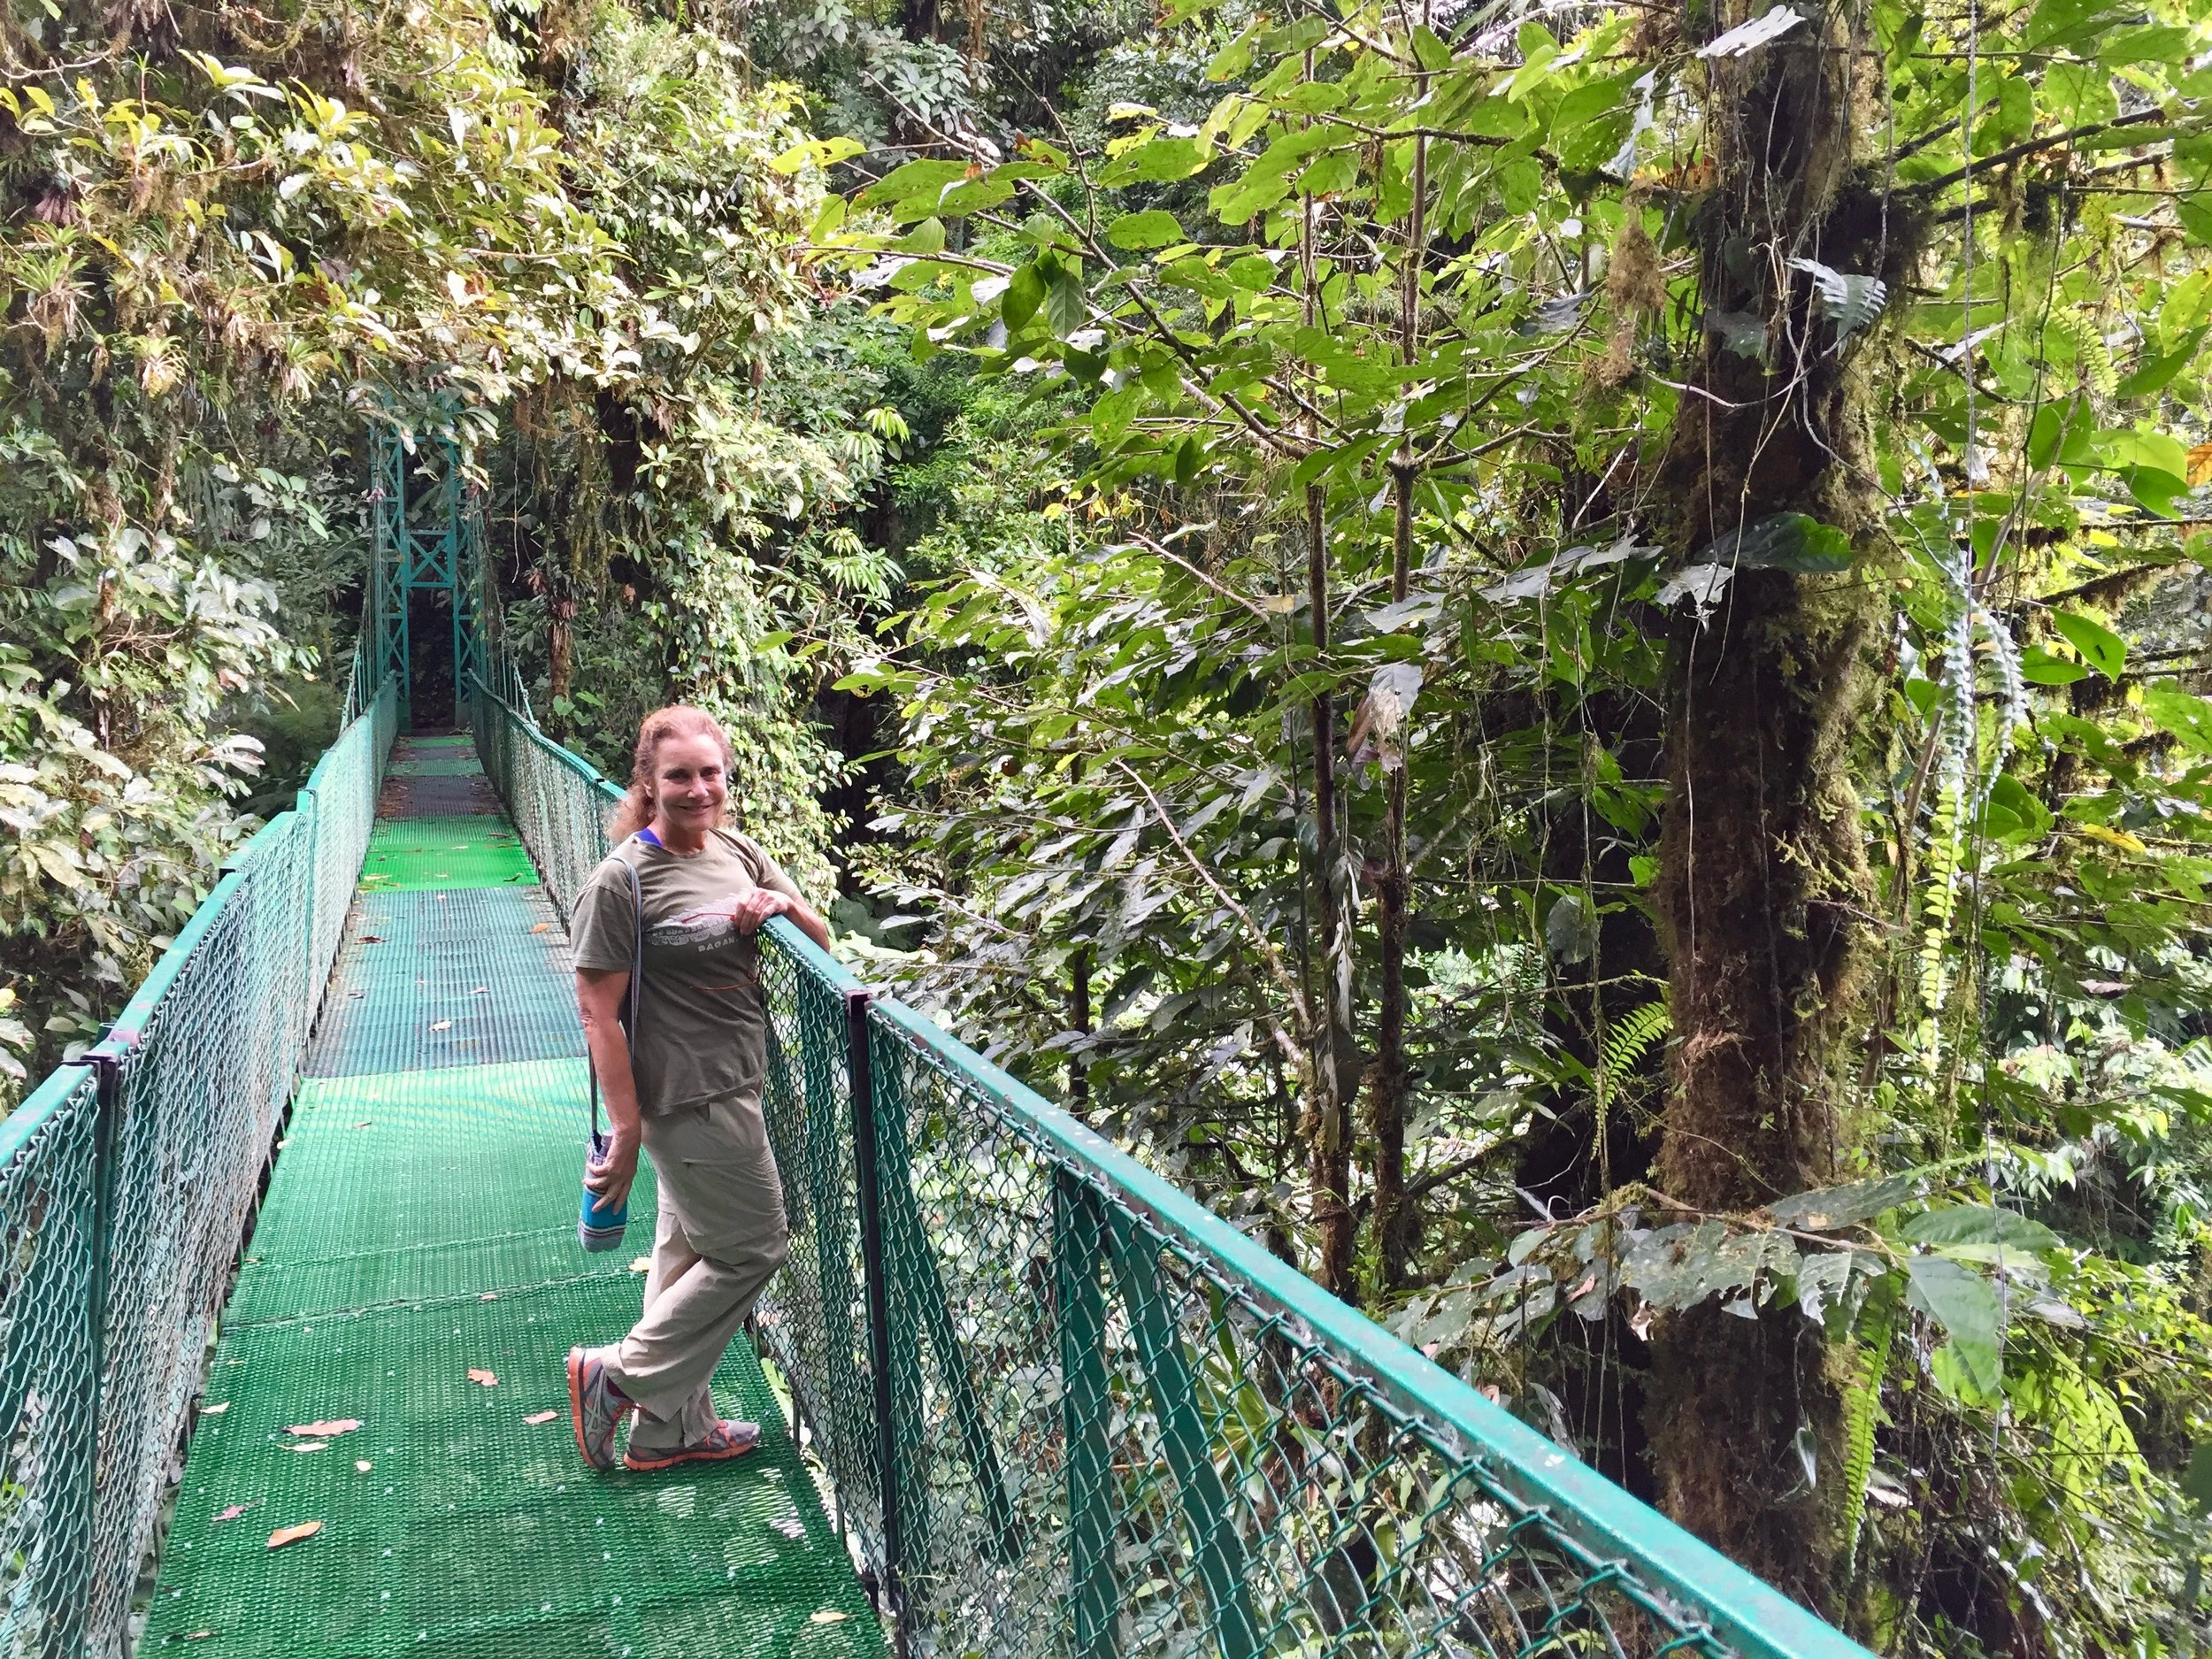 After zip-lining, there are a series of bridges over the rain forest for a stroll.